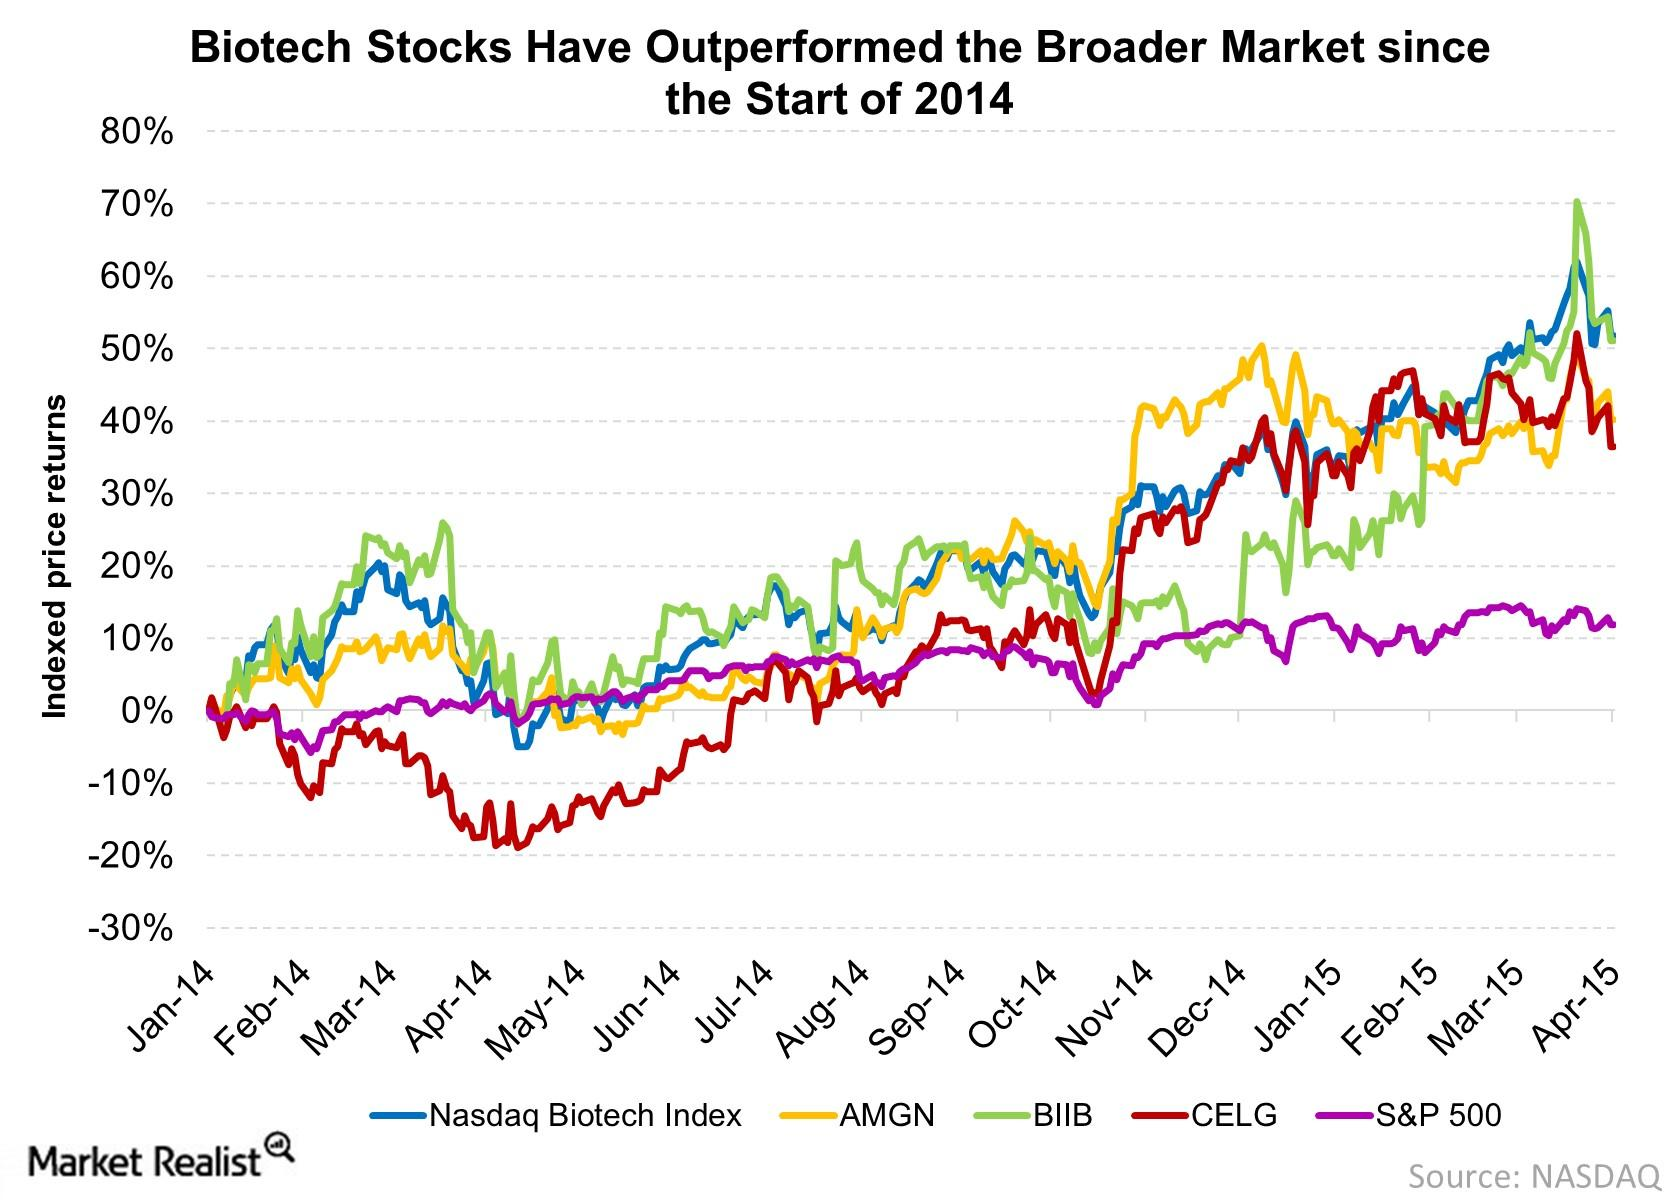 The rally in biotech stocks has seen superior gains.